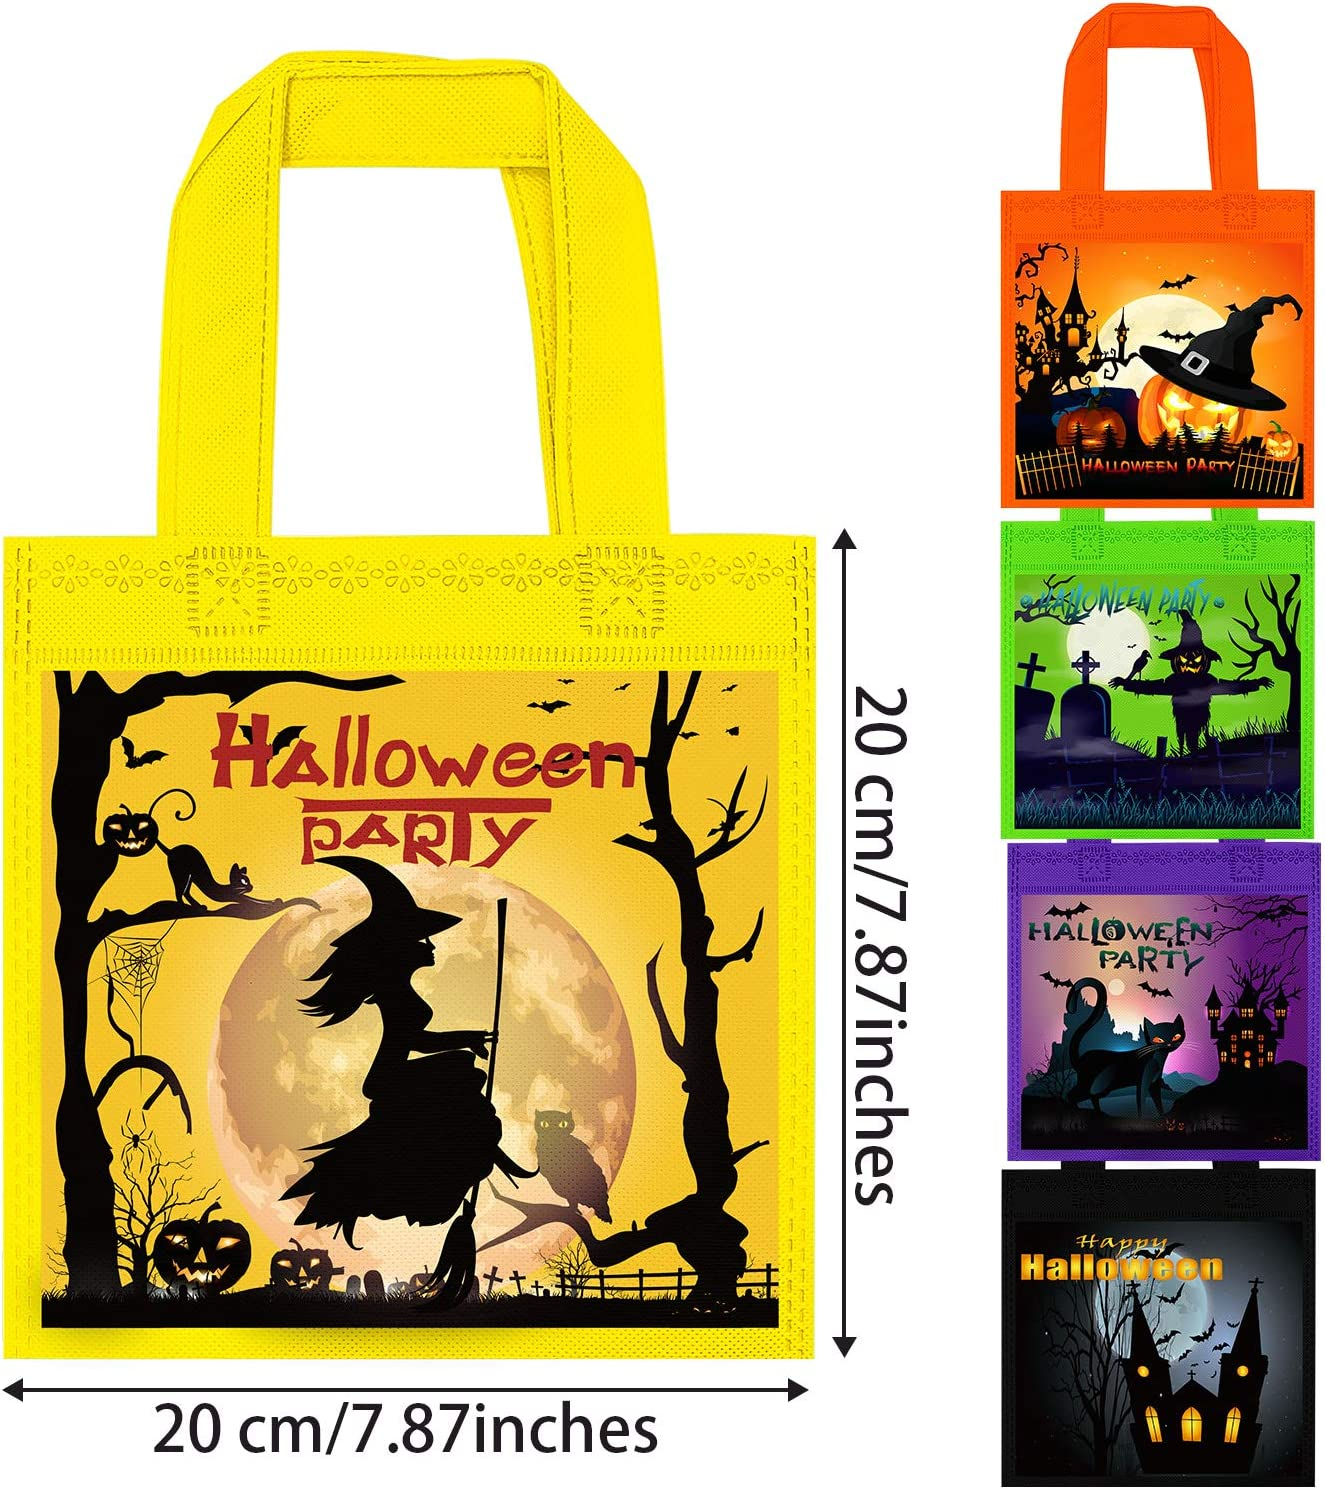 Cooraby 25 Packs 7.87 x 7.87 Inches Halloween Non-woven Bags Halloween Bags with Handles Halloween Goodie Bags for Trick or Treat